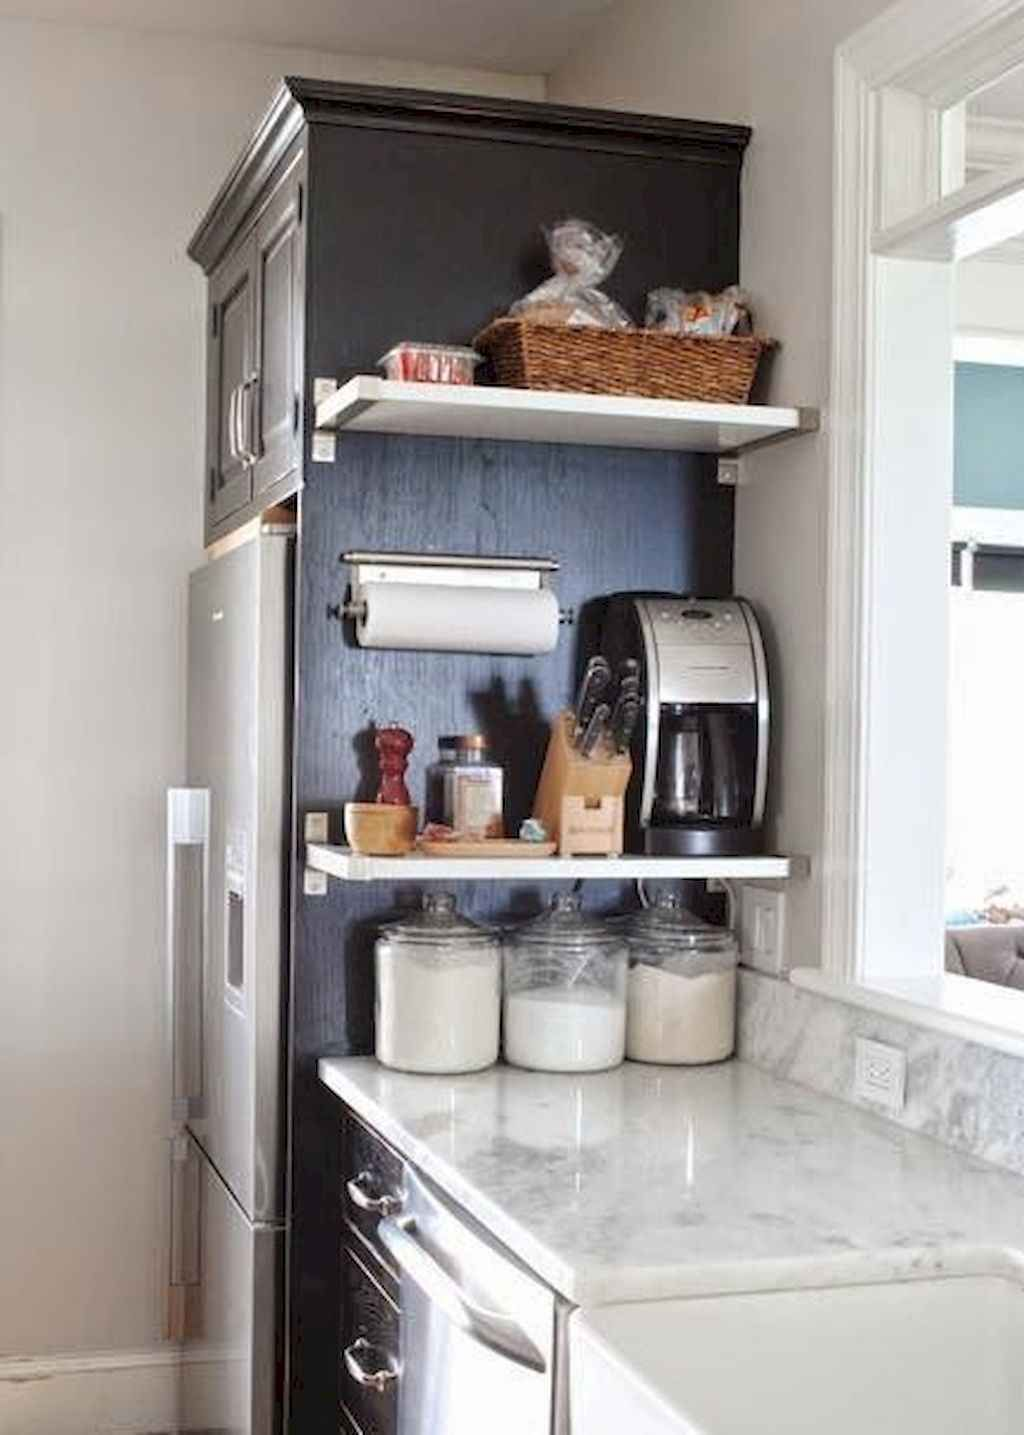 55 Diy Small Kitchen Storage And Organization Ideas Small Kitchen Storage Small Kitchen Decor Small Space Kitchen